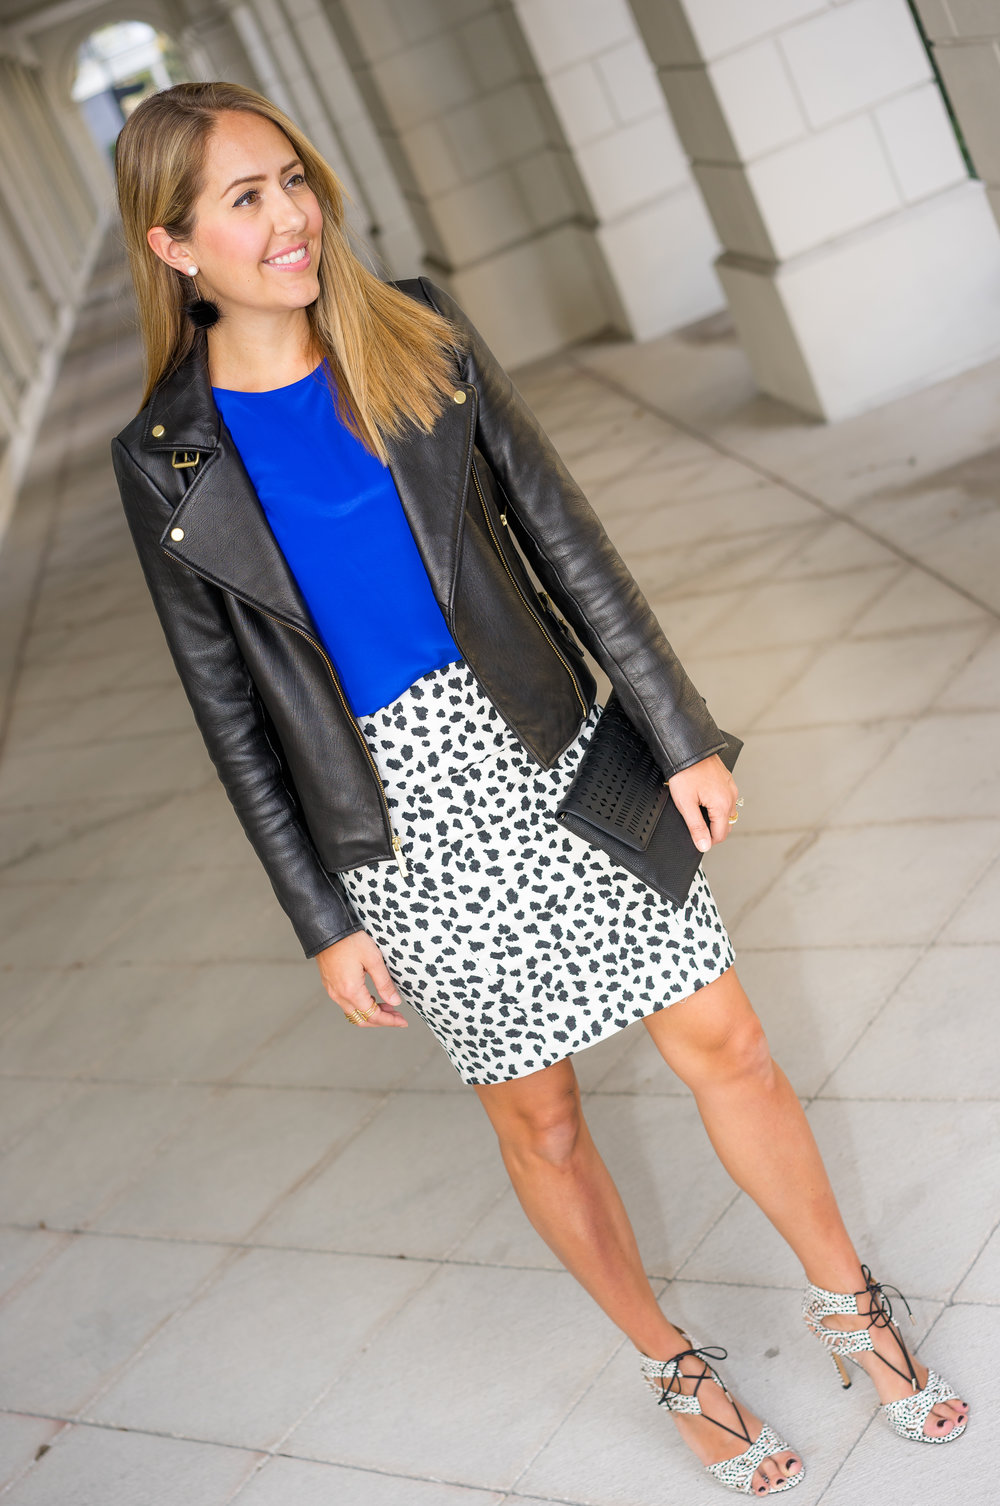 Black leather jacket, cobalt, dalmatian print